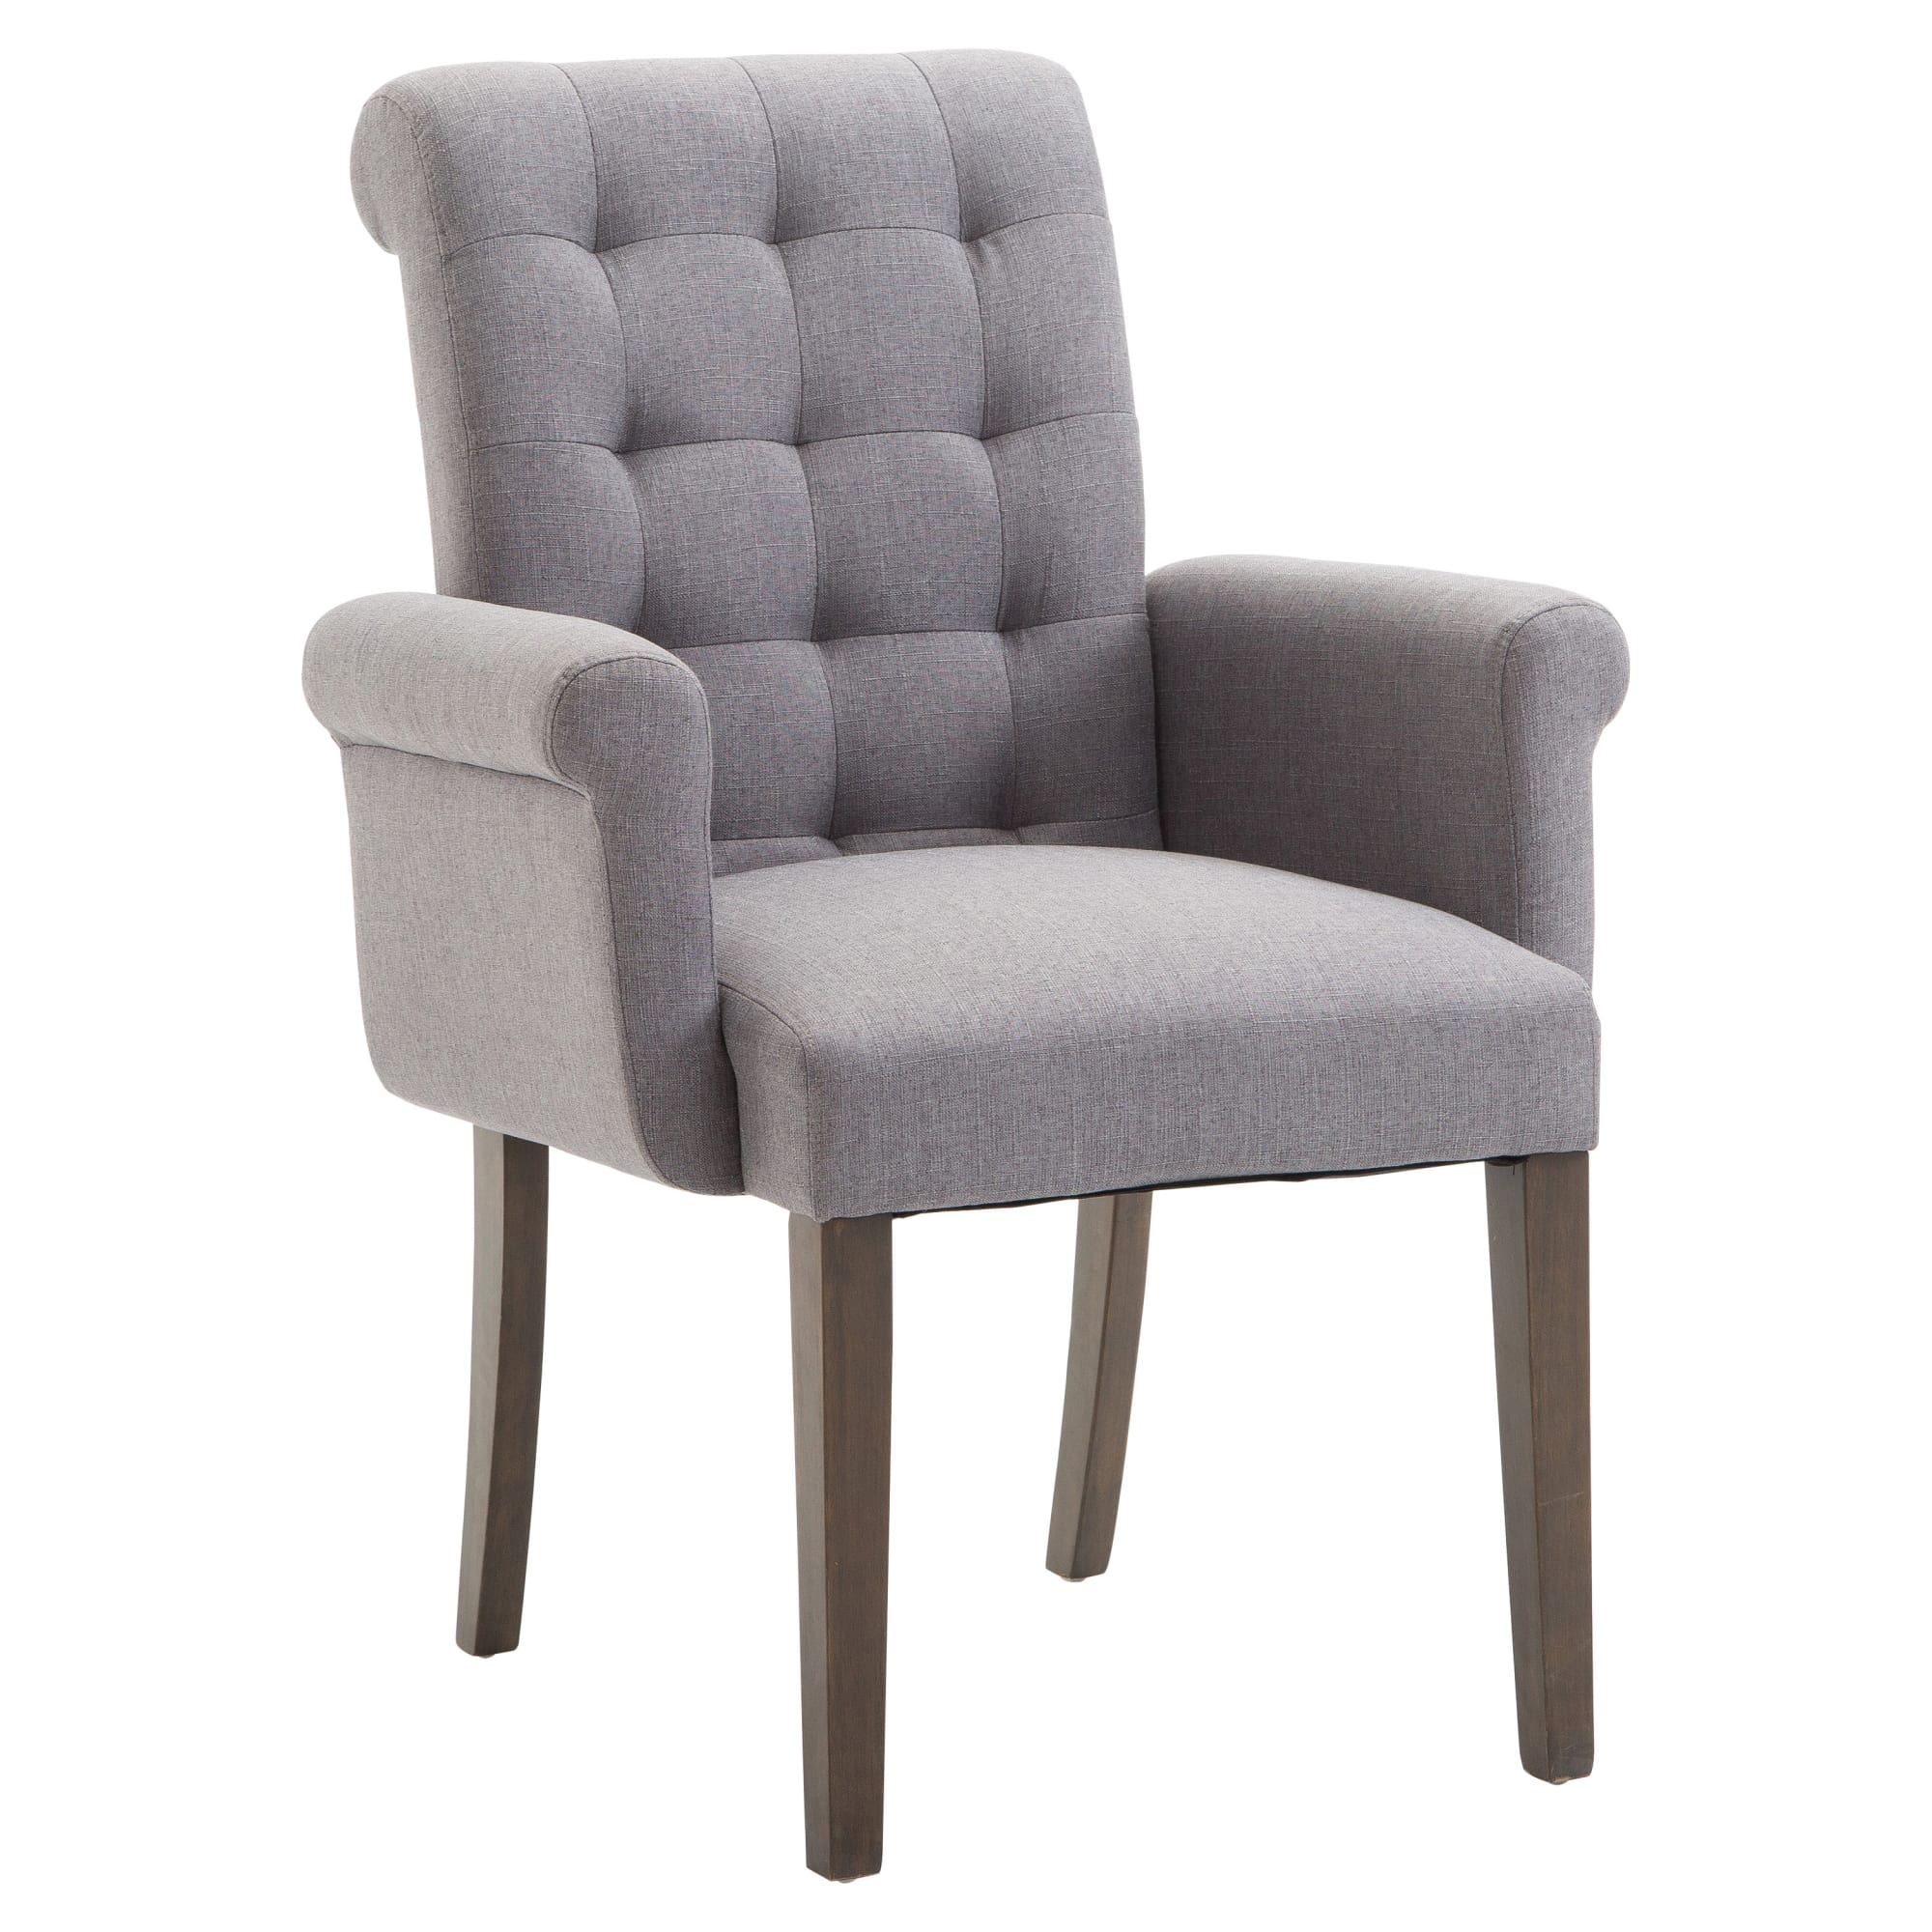 Luna Upholstered Arm Chair